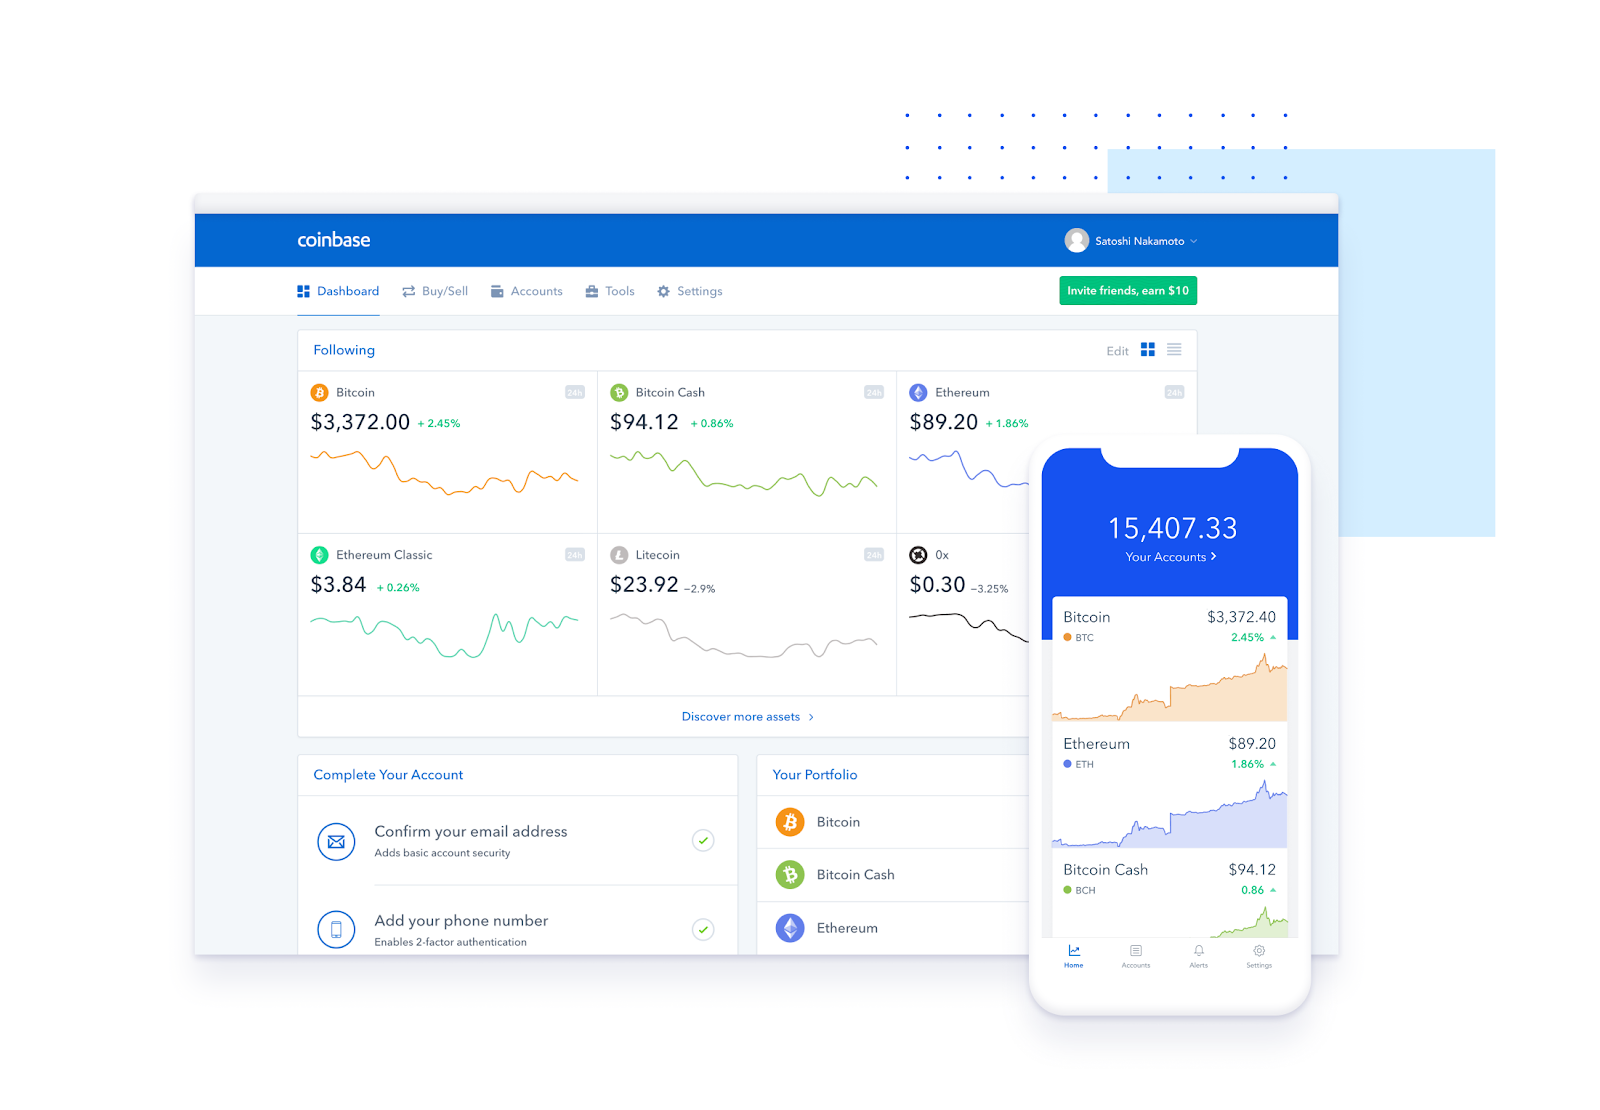 coinbase is for everyone coinbase pro is for experts